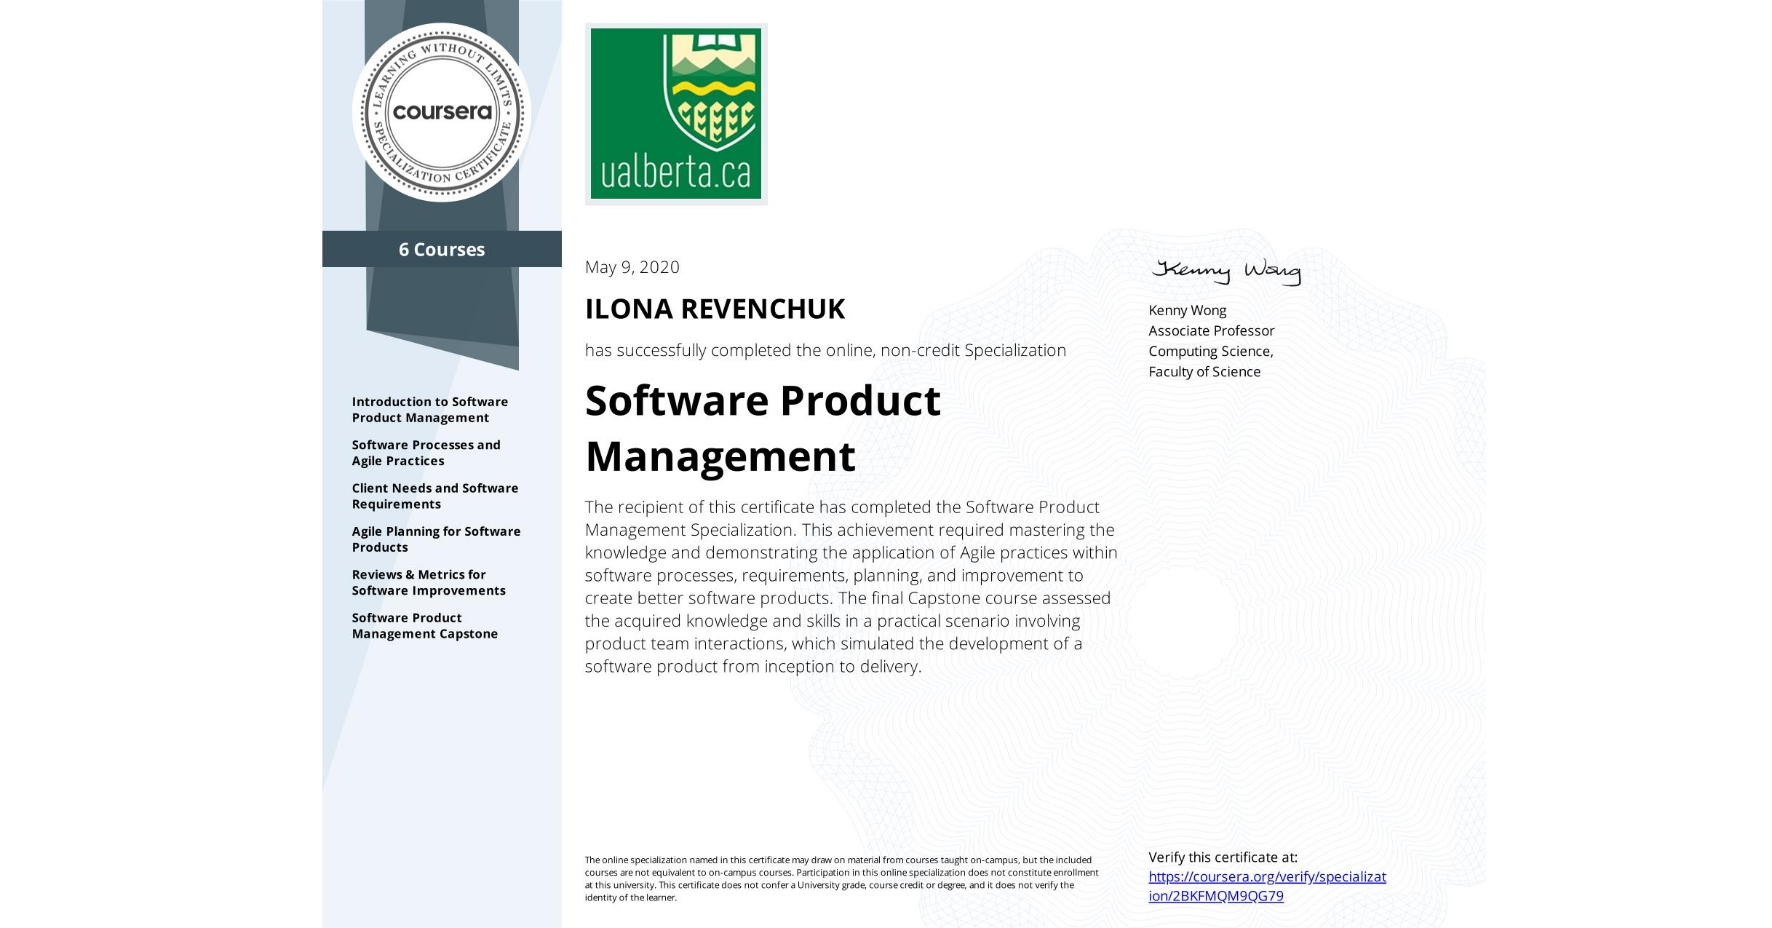 View certificate for ILONA REVENCHUK, Software Product Management, offered through Coursera. The recipient of this certificate has completed the Software Product Management Specialization. This achievement required mastering the knowledge and demonstrating the application of Agile practices within software processes, requirements, planning, and improvement to create better software products. The final Capstone course assessed the acquired knowledge and skills in a practical scenario involving product team interactions, which simulated the development of a software product from inception to delivery.